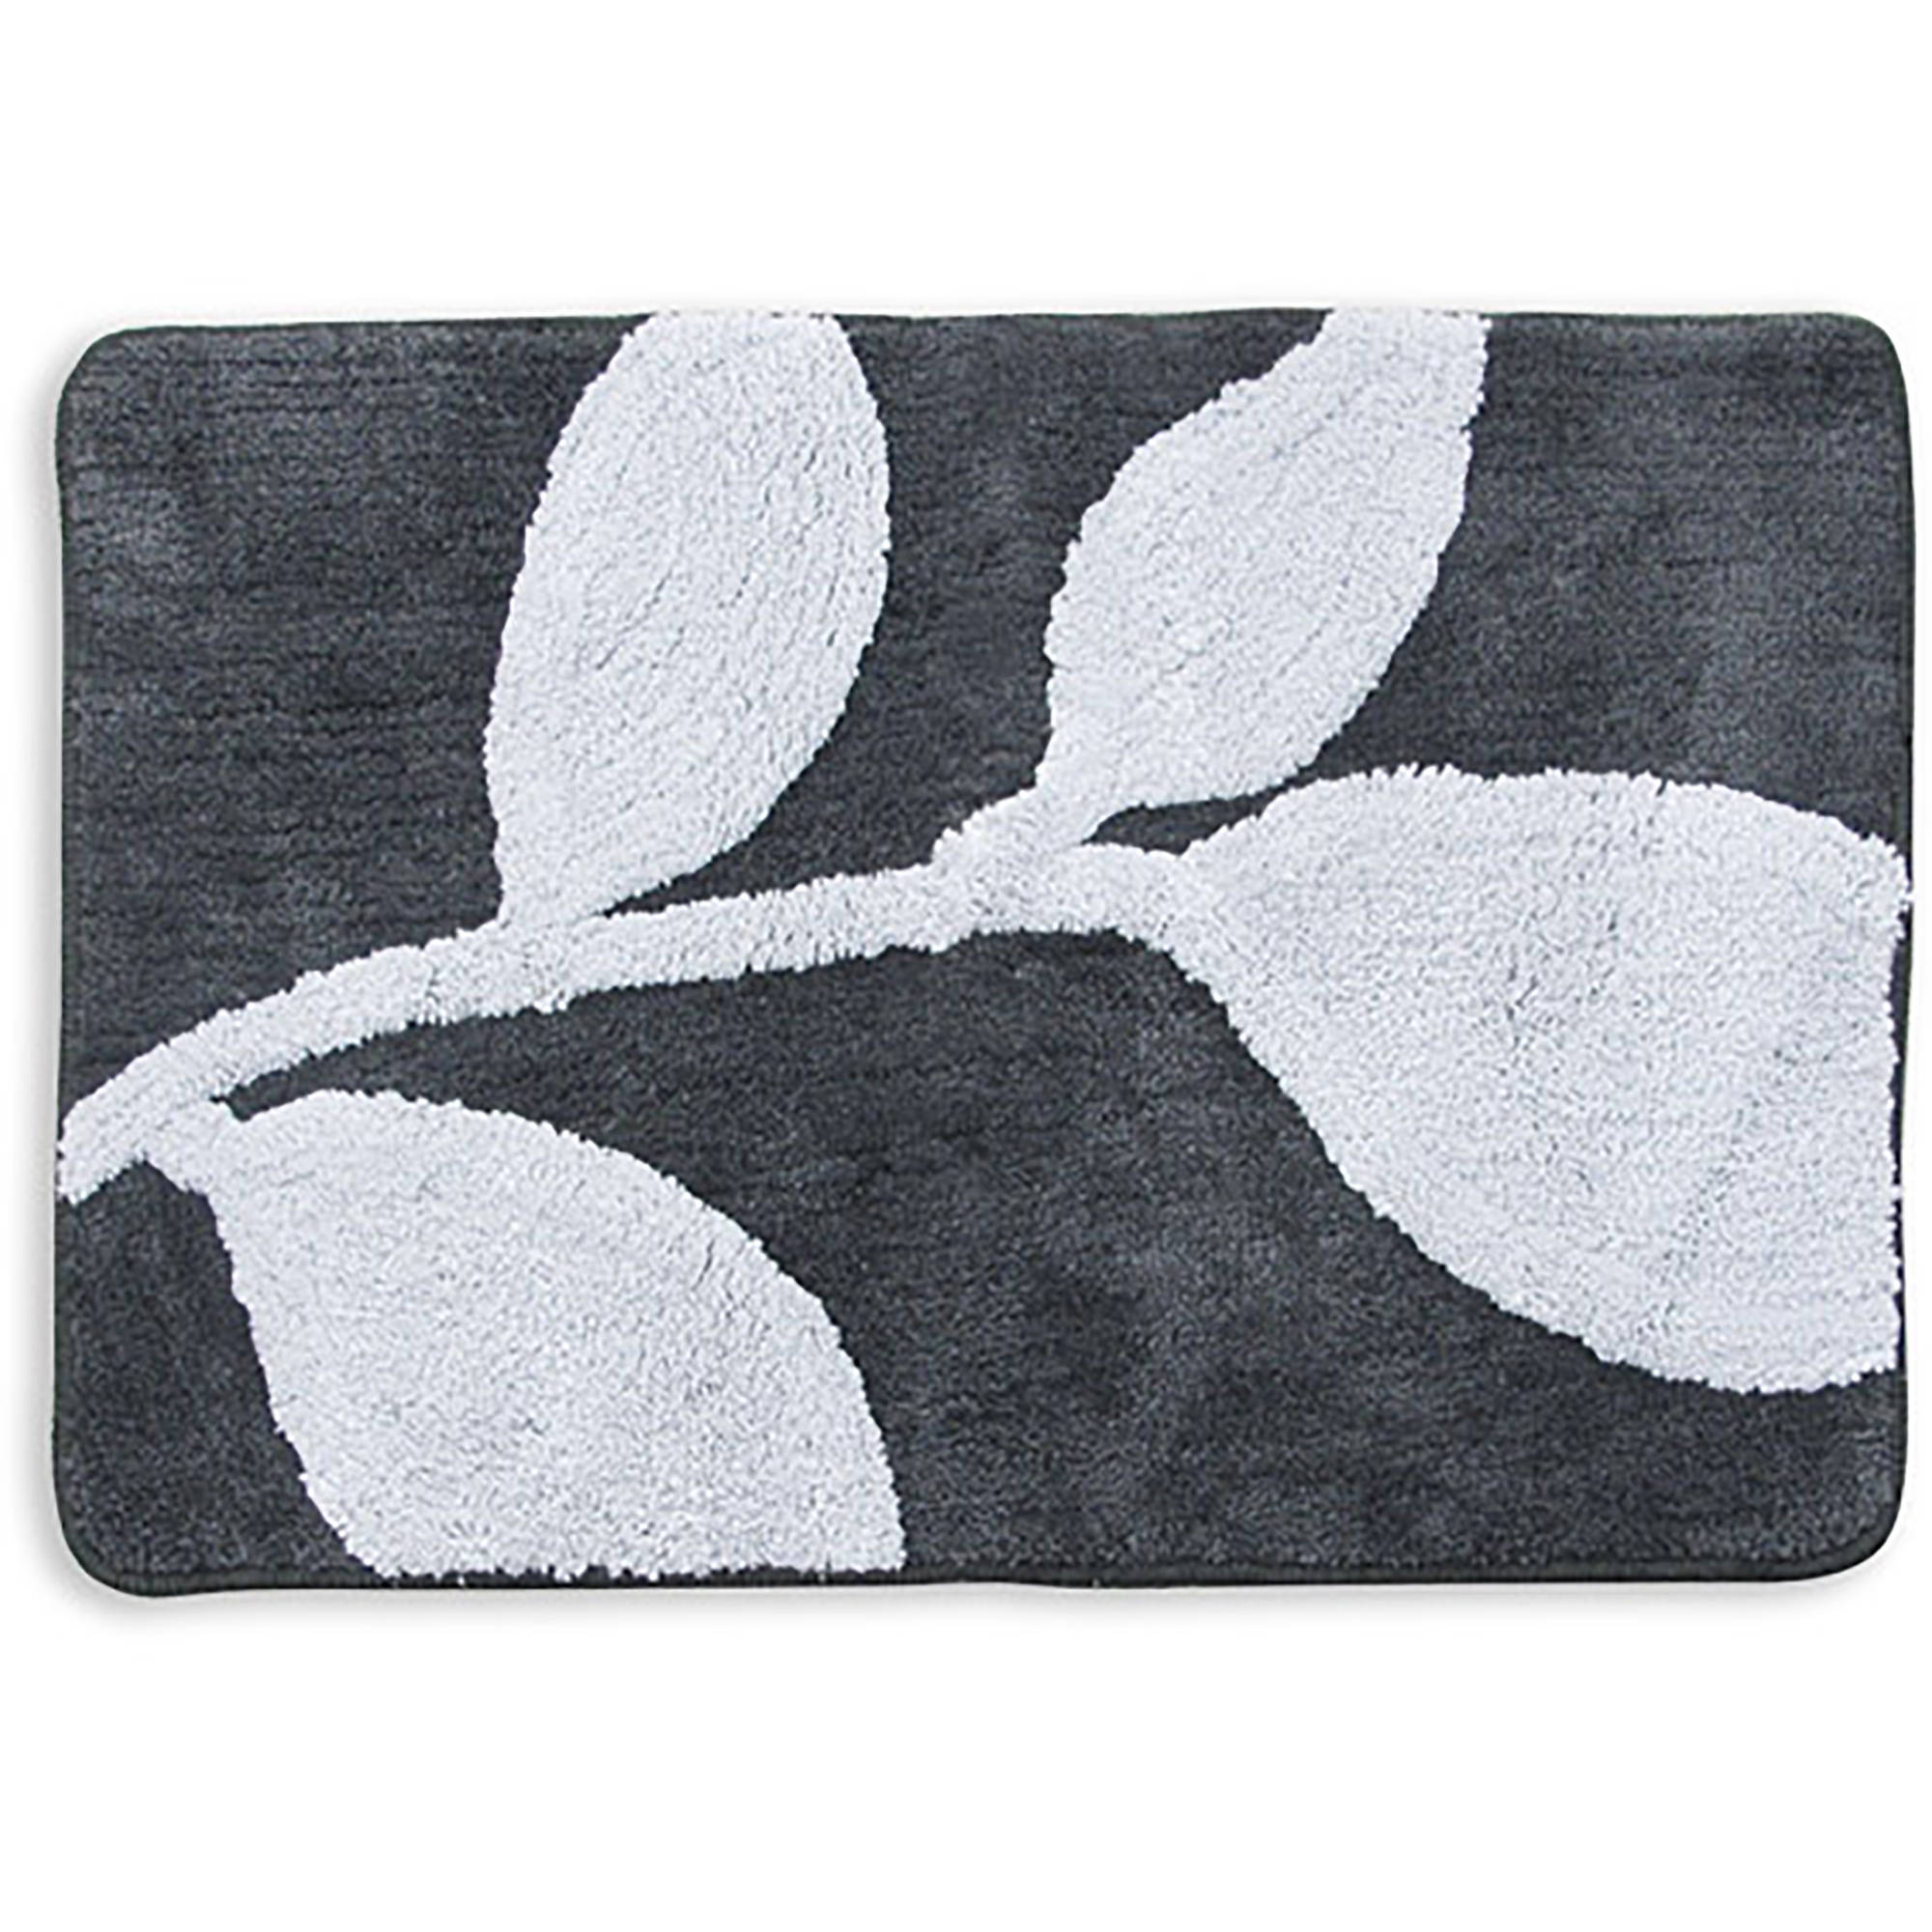 Better Homes and Gardens Tranquil Leaves Decorative Bath Collection - Bath Rug